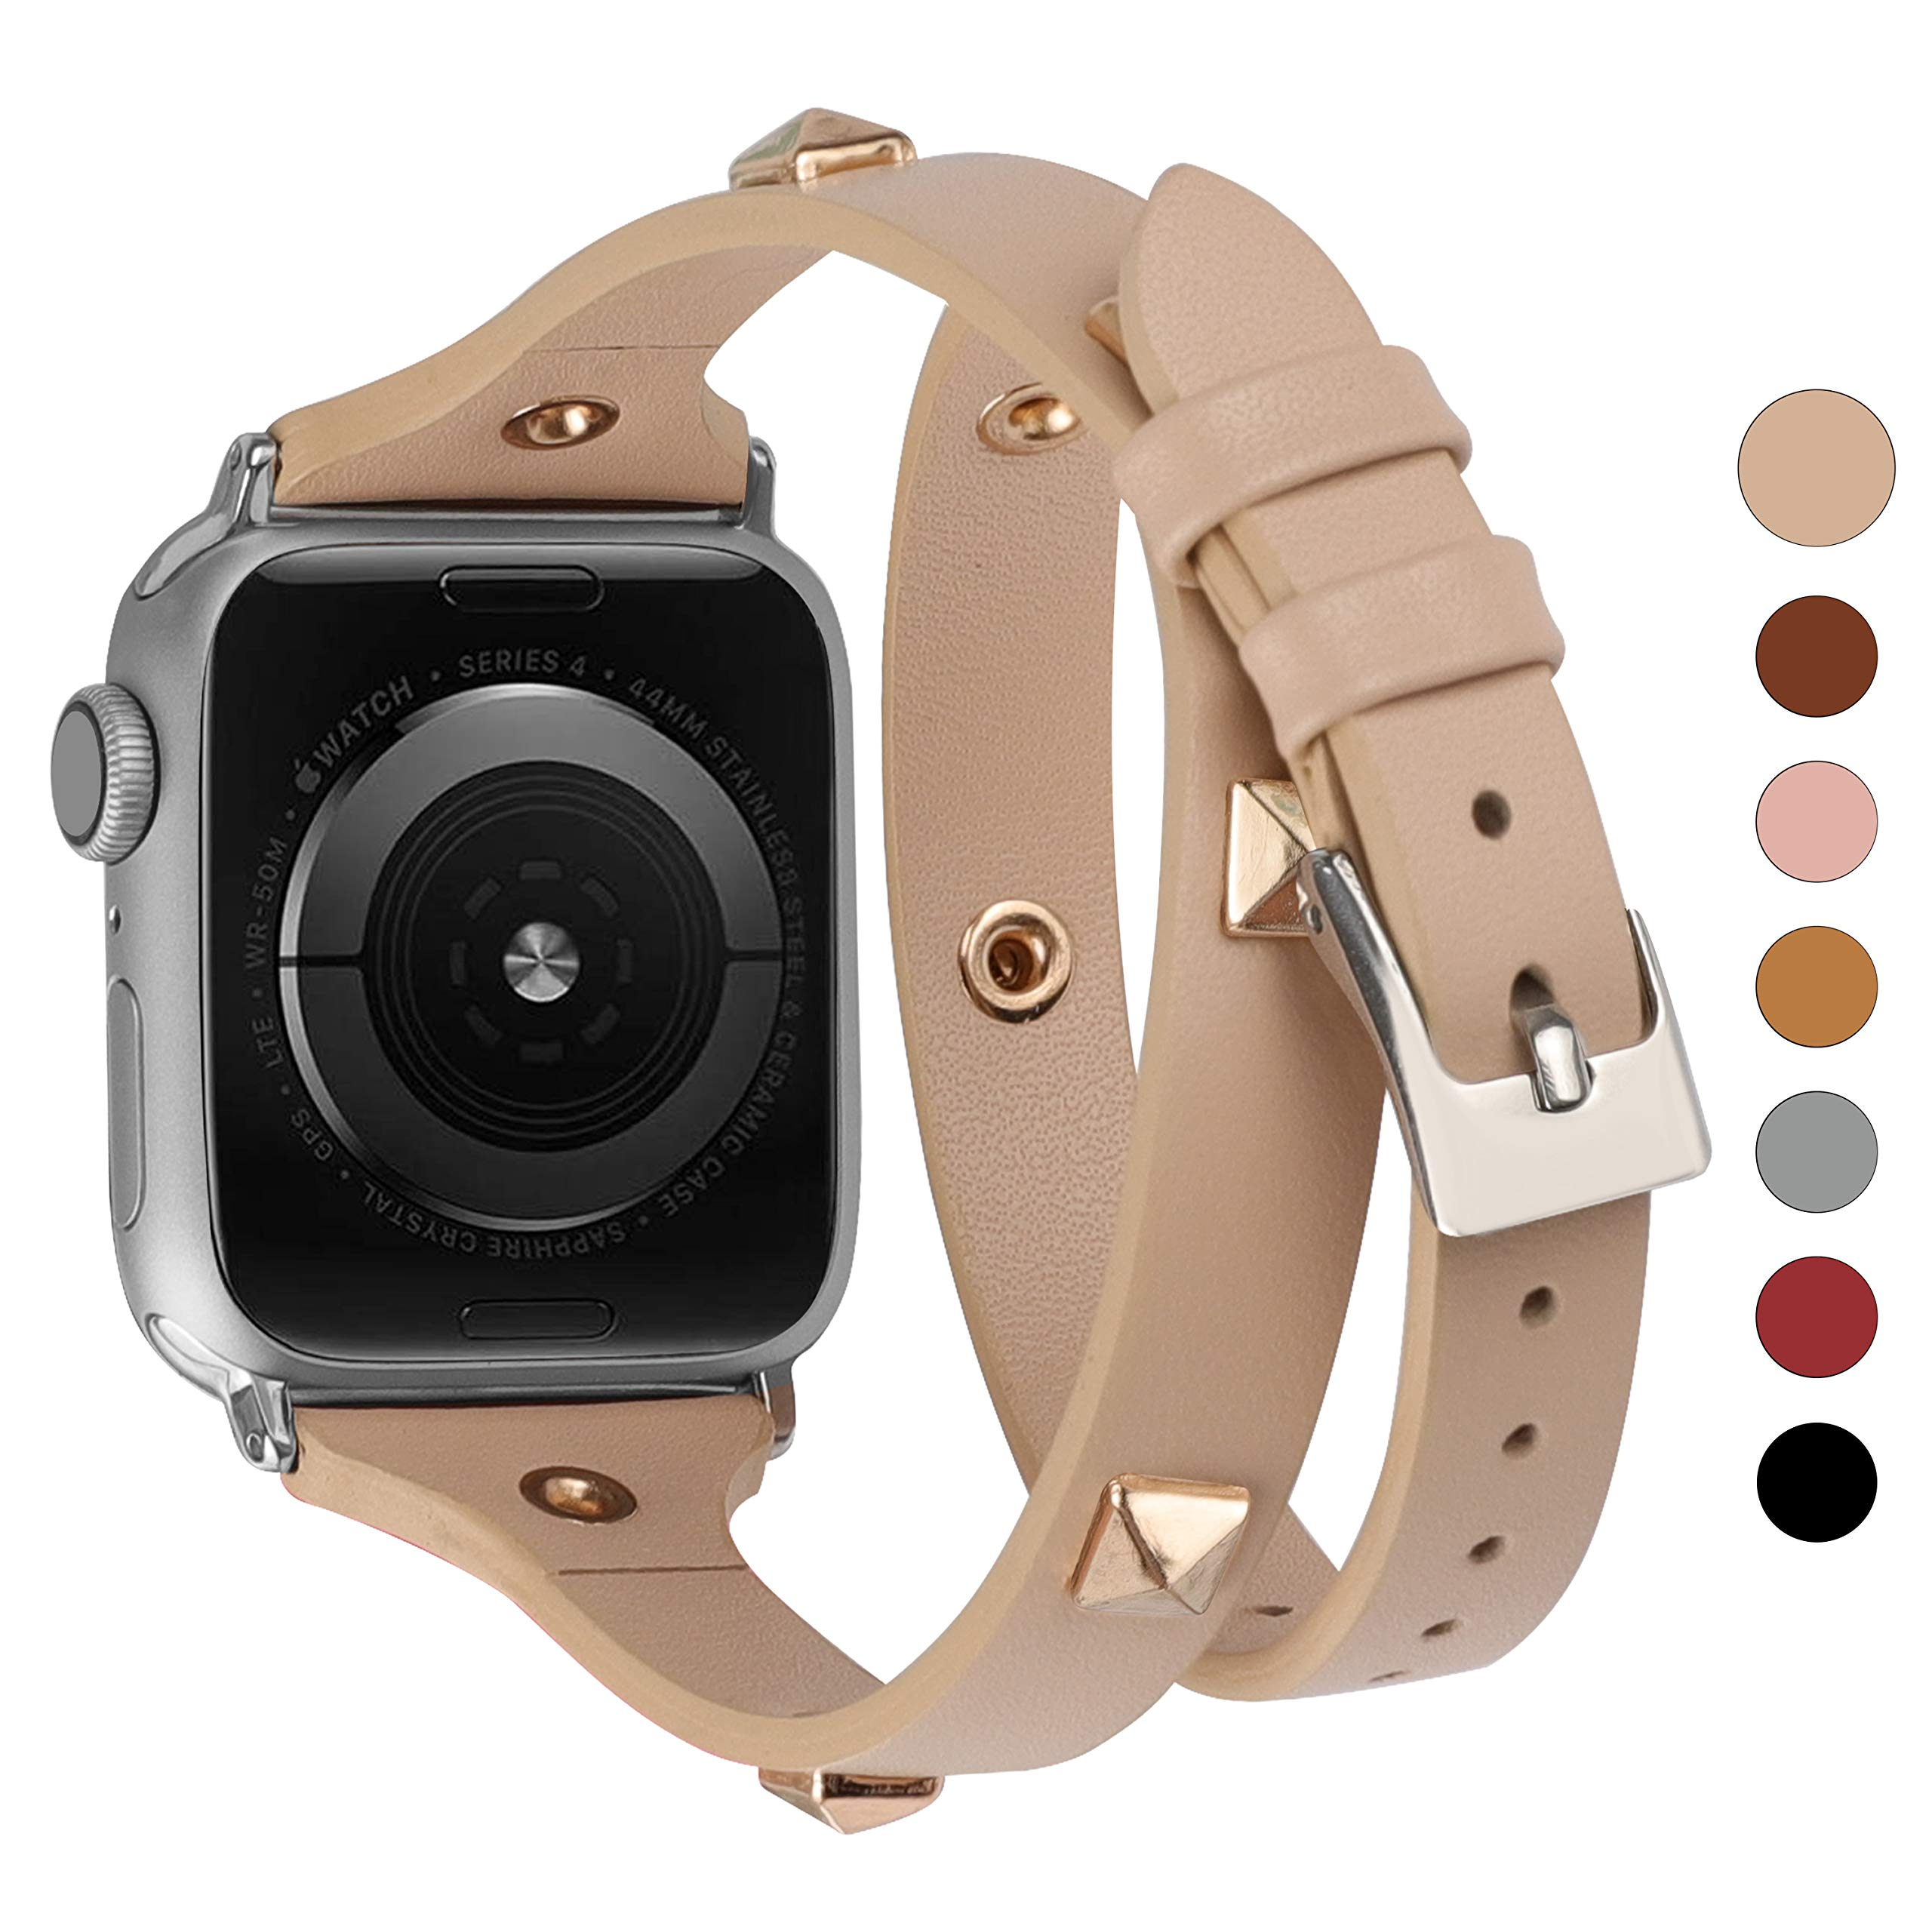 Glebo Leather Double Wrap Band Compatible For Watch 38mm 40mm Studded With Rose Gold Rivet Watch Bands Strap Compatible For Series 5 Series 4 Series 3 Series 2 Series 1 Beige Buy Online In